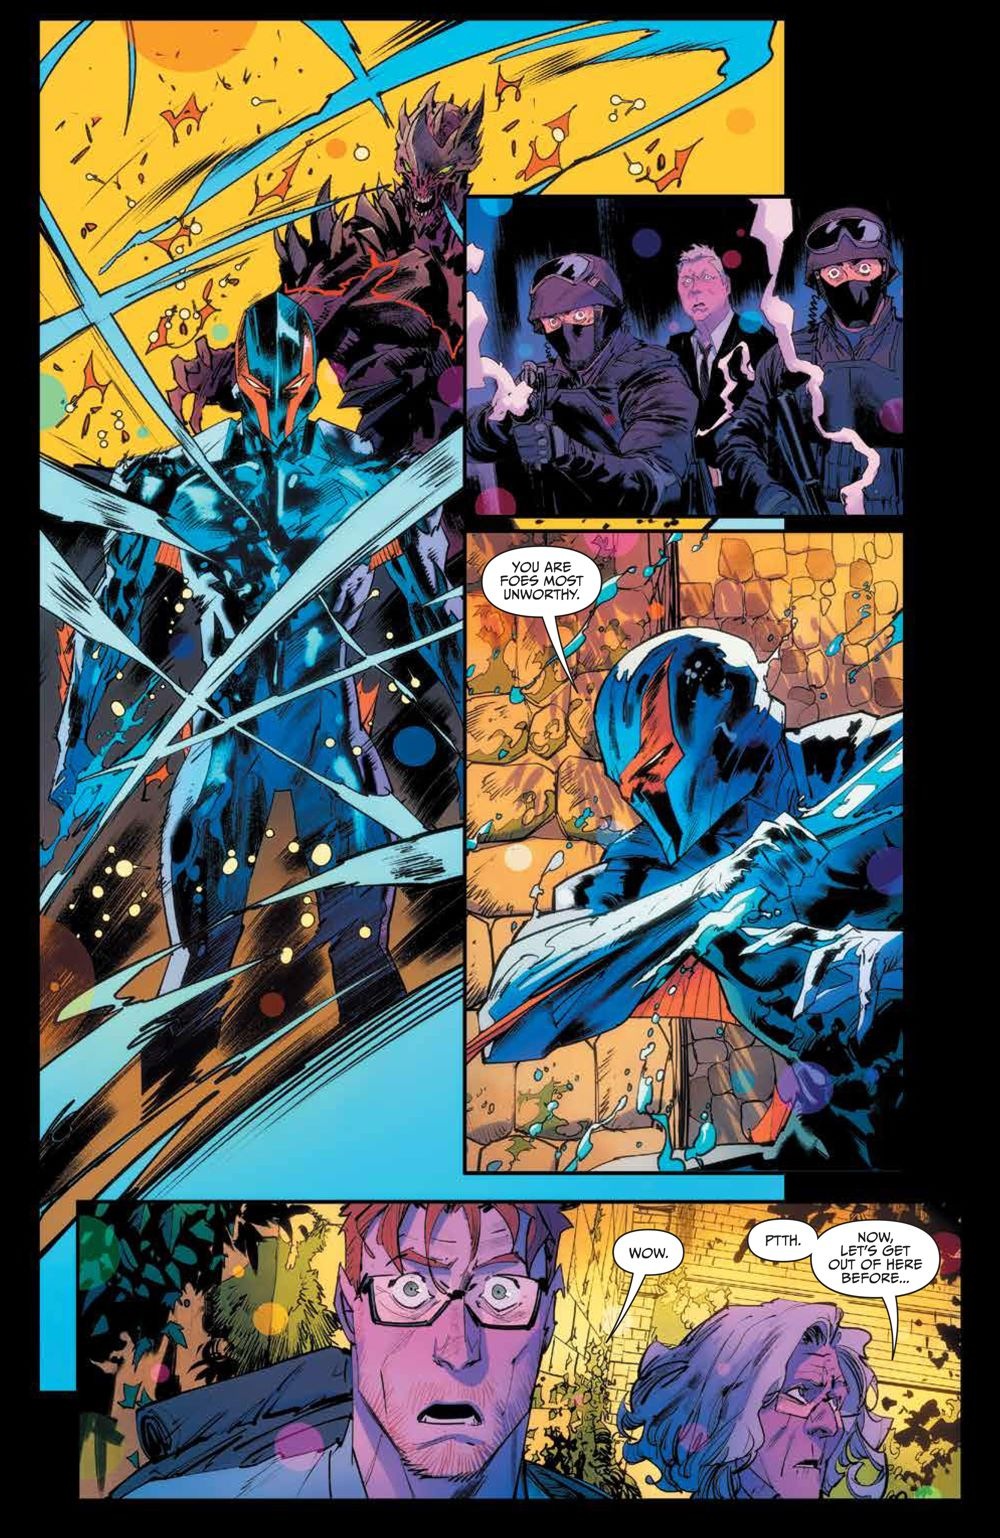 OnceFuture_017_PRESS_5 ComicList Previews: ONCE AND FUTURE #17